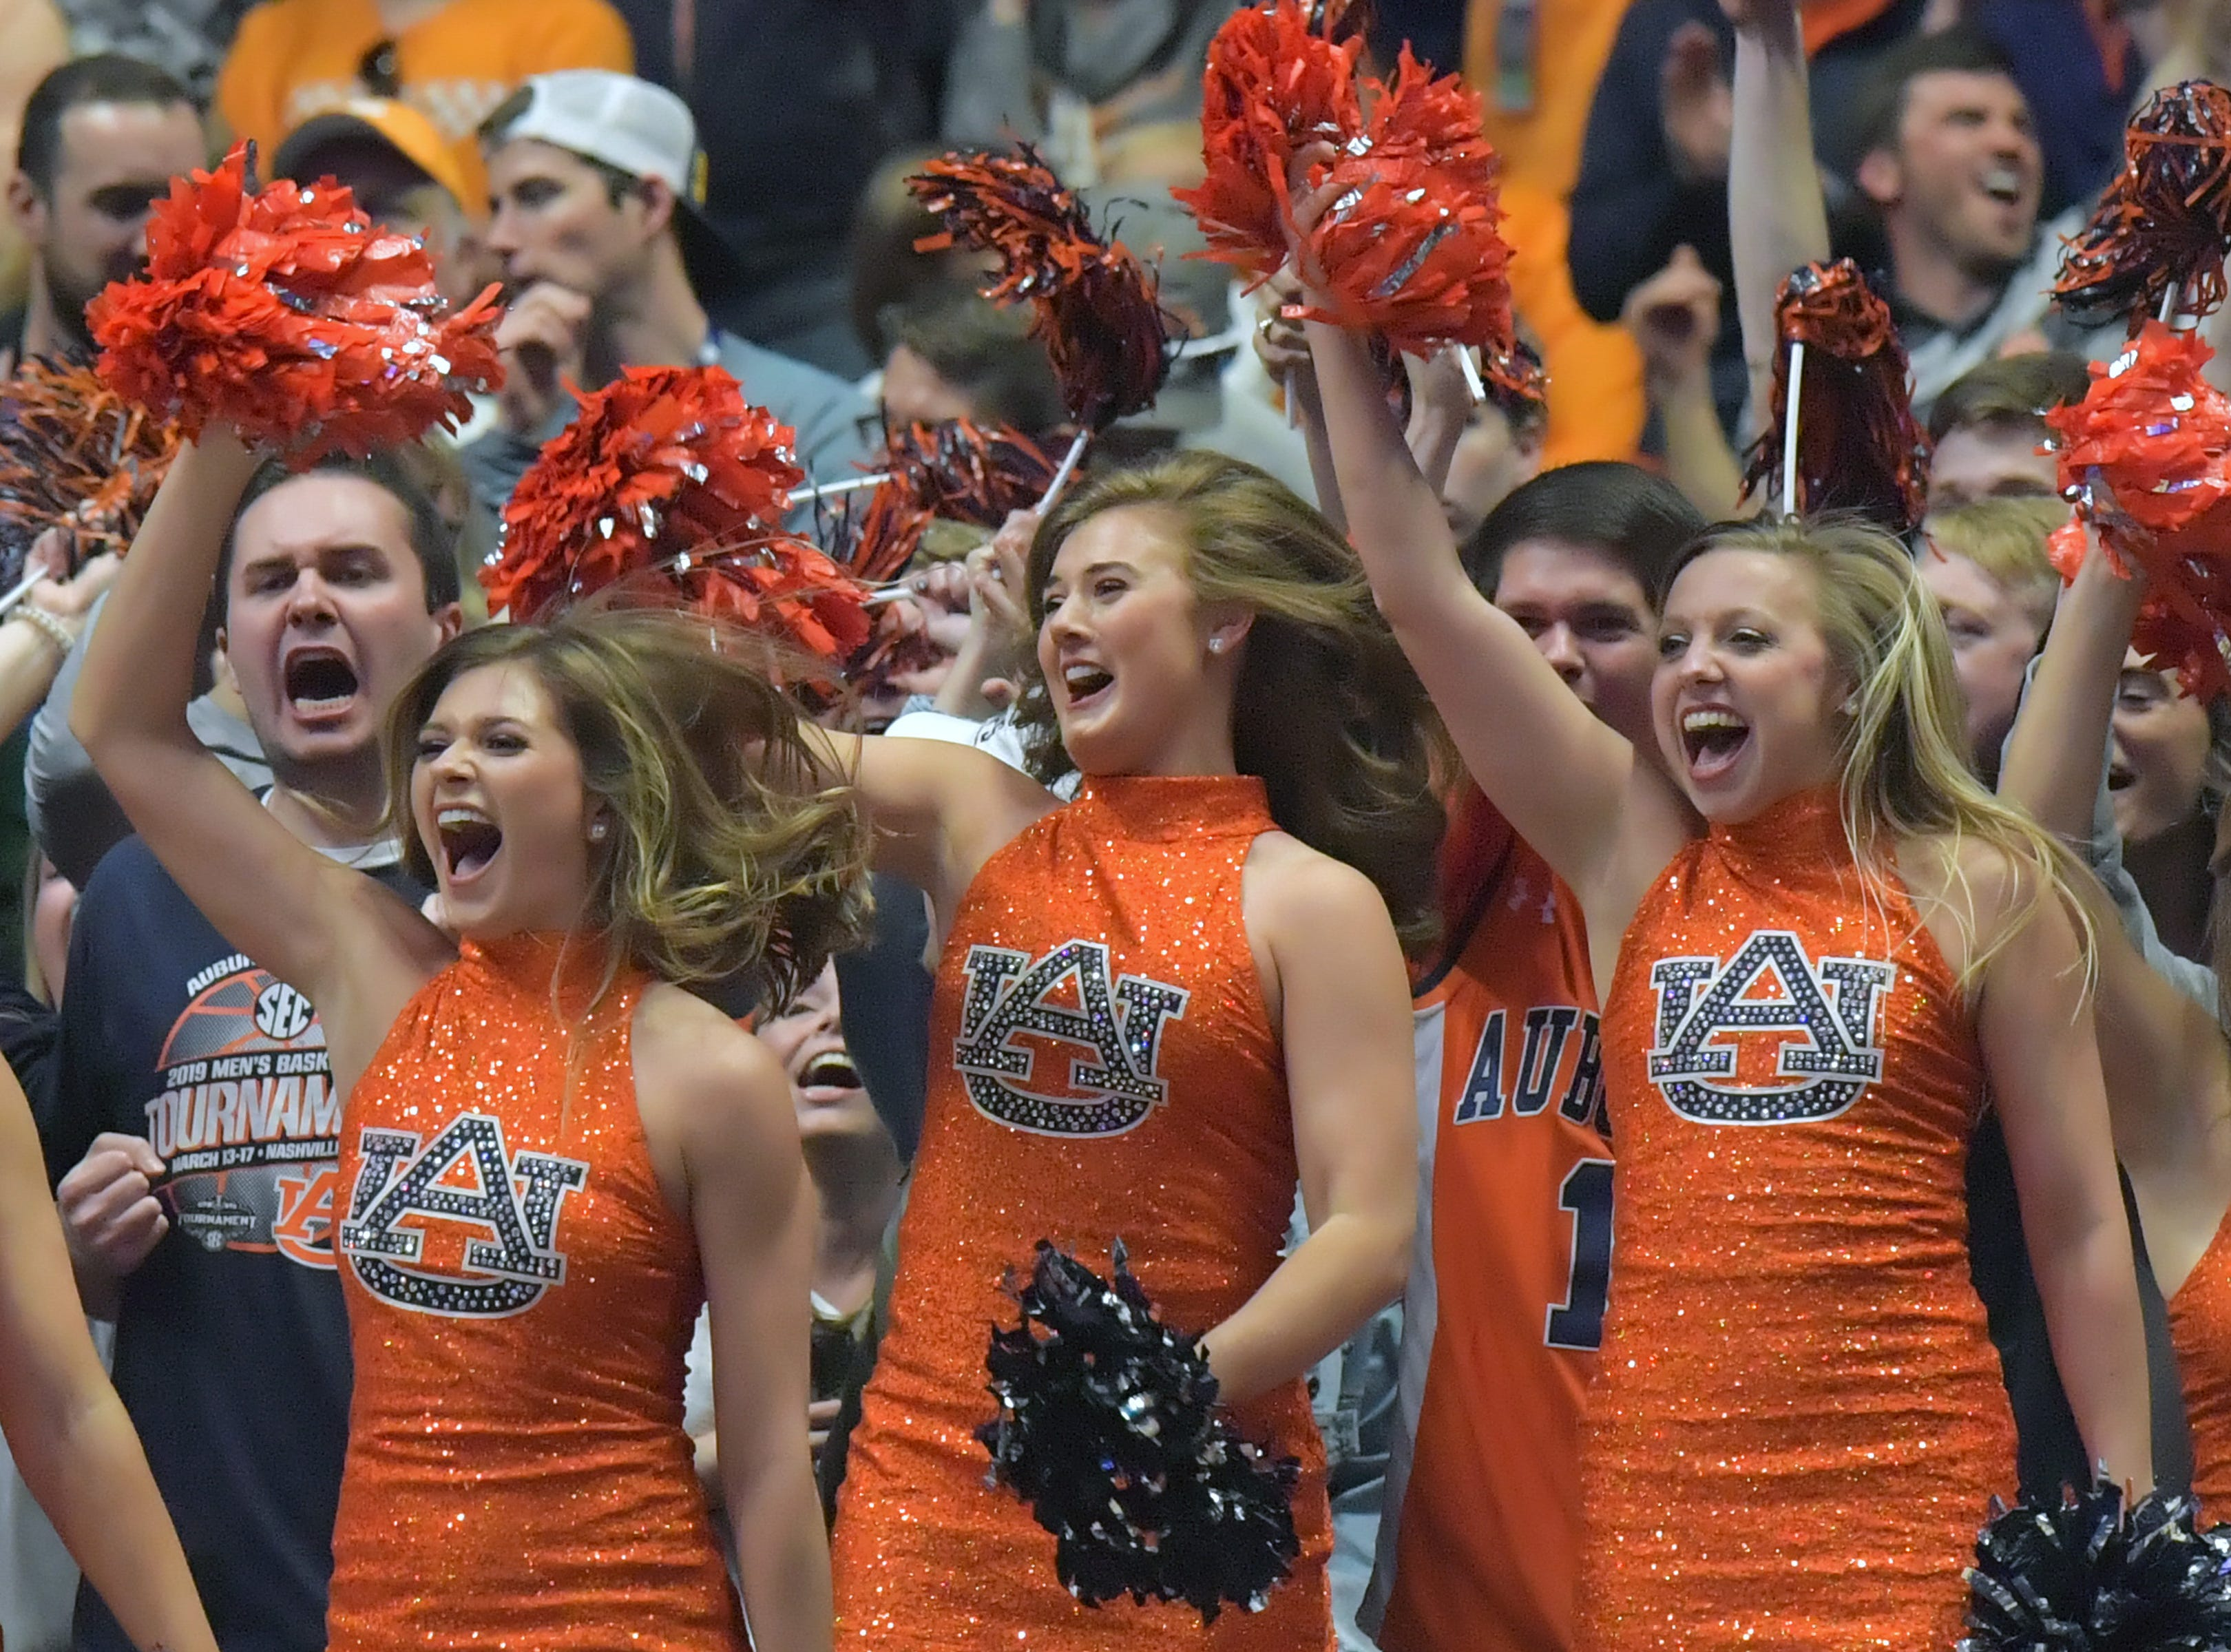 Mar 17, 2019; Nashville, TN, USA; Auburn Tigers dance team members celebrate their team scoring during the second half of the championship game against the Tennessee Volunteers in the SEC conference tournament at Bridgestone Arena. Auburn won 84-64. Mandatory Credit: Jim Brown-USA TODAY Sports